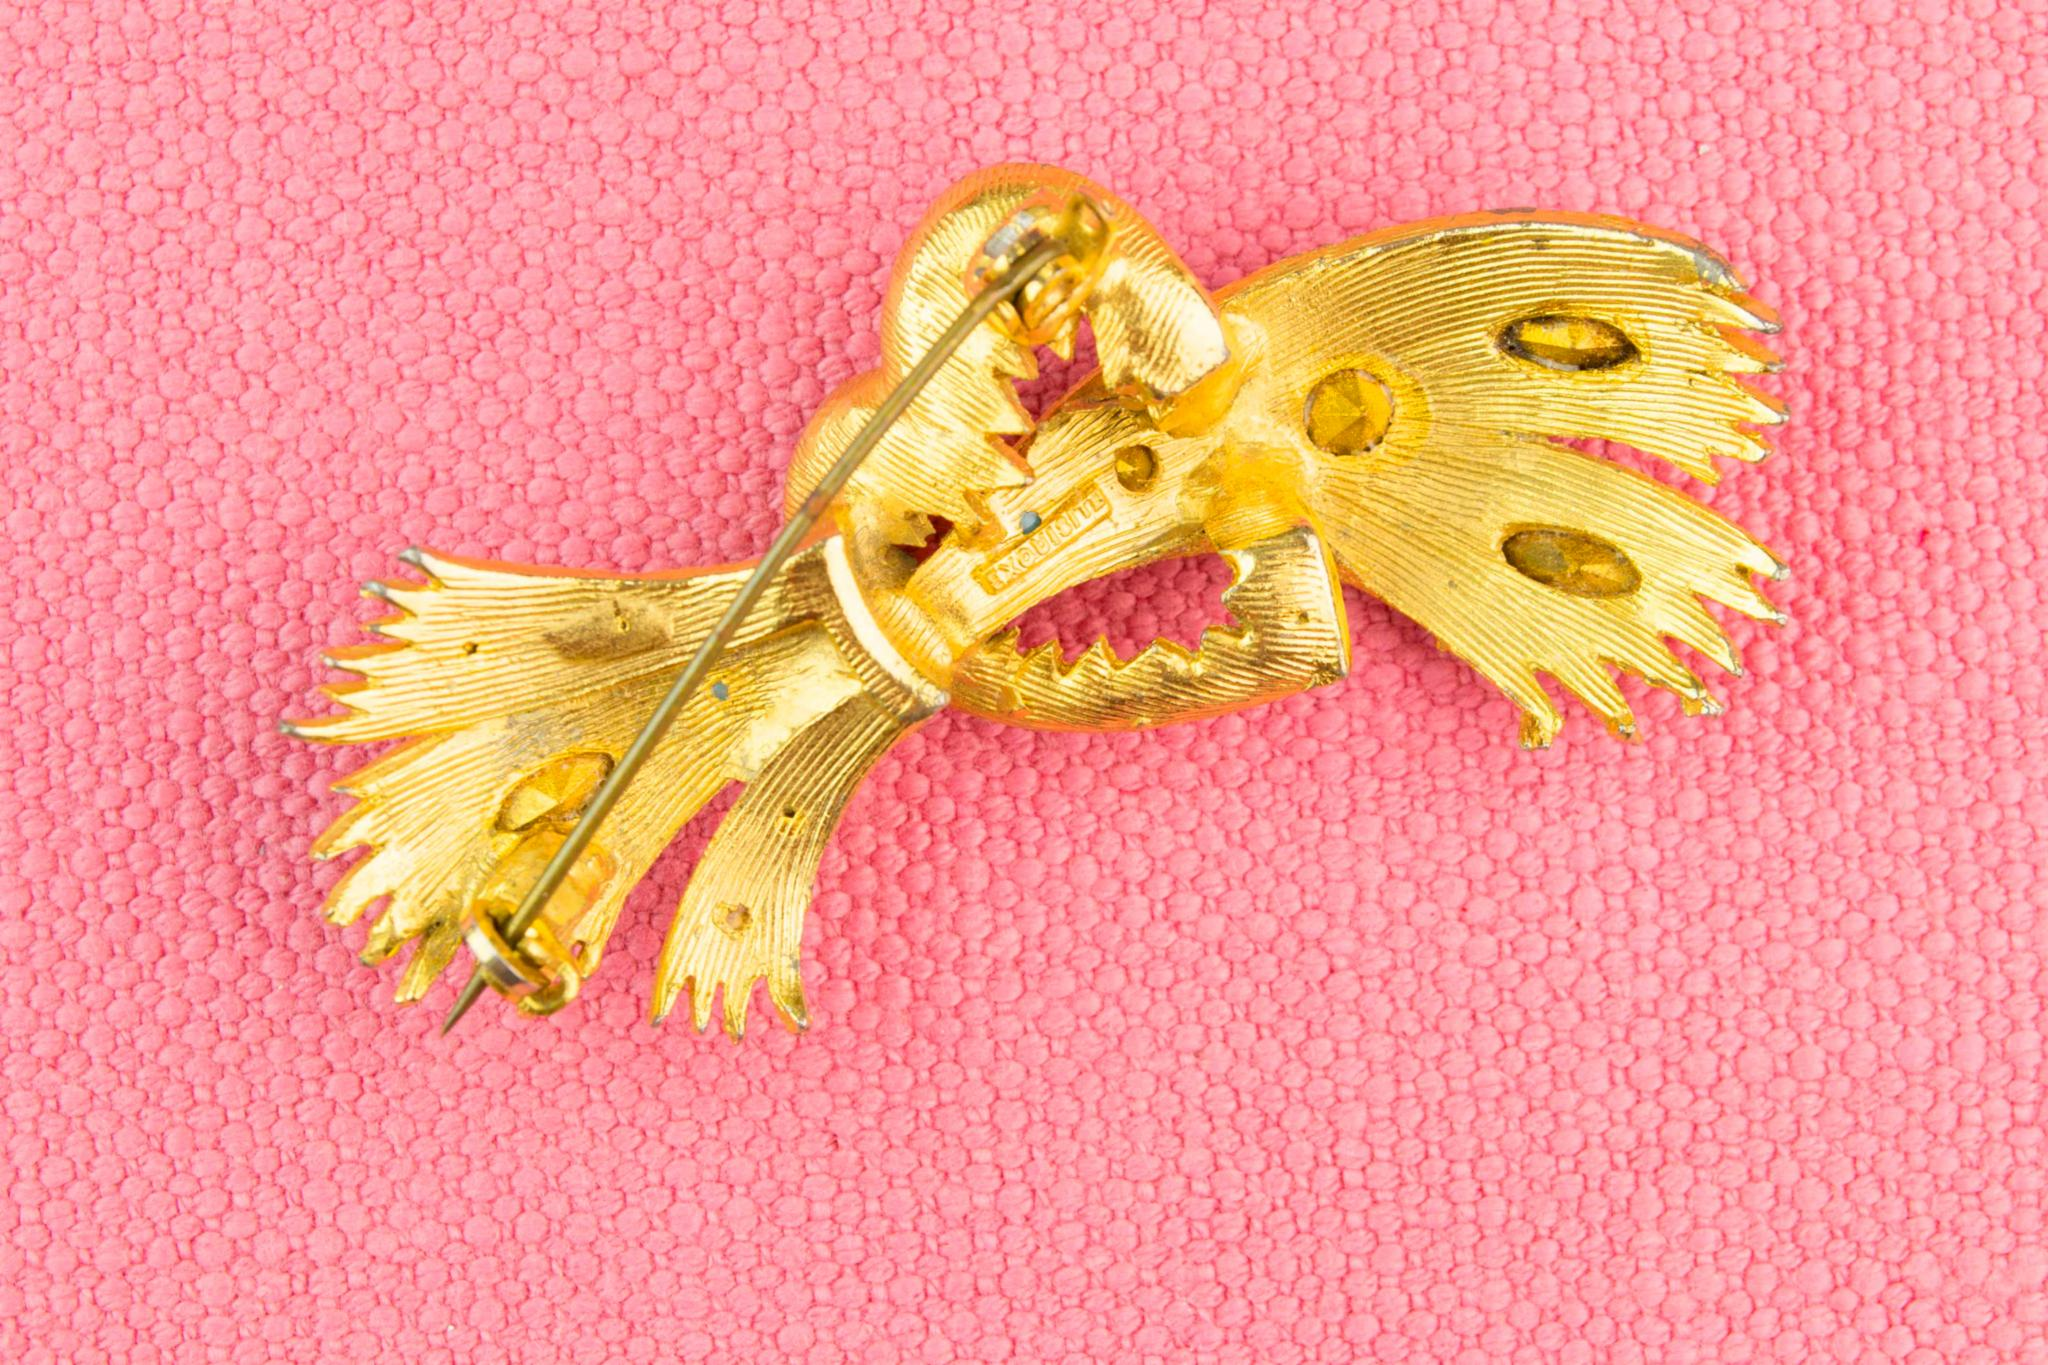 Gold Brooch by Exquisite, English 1950s